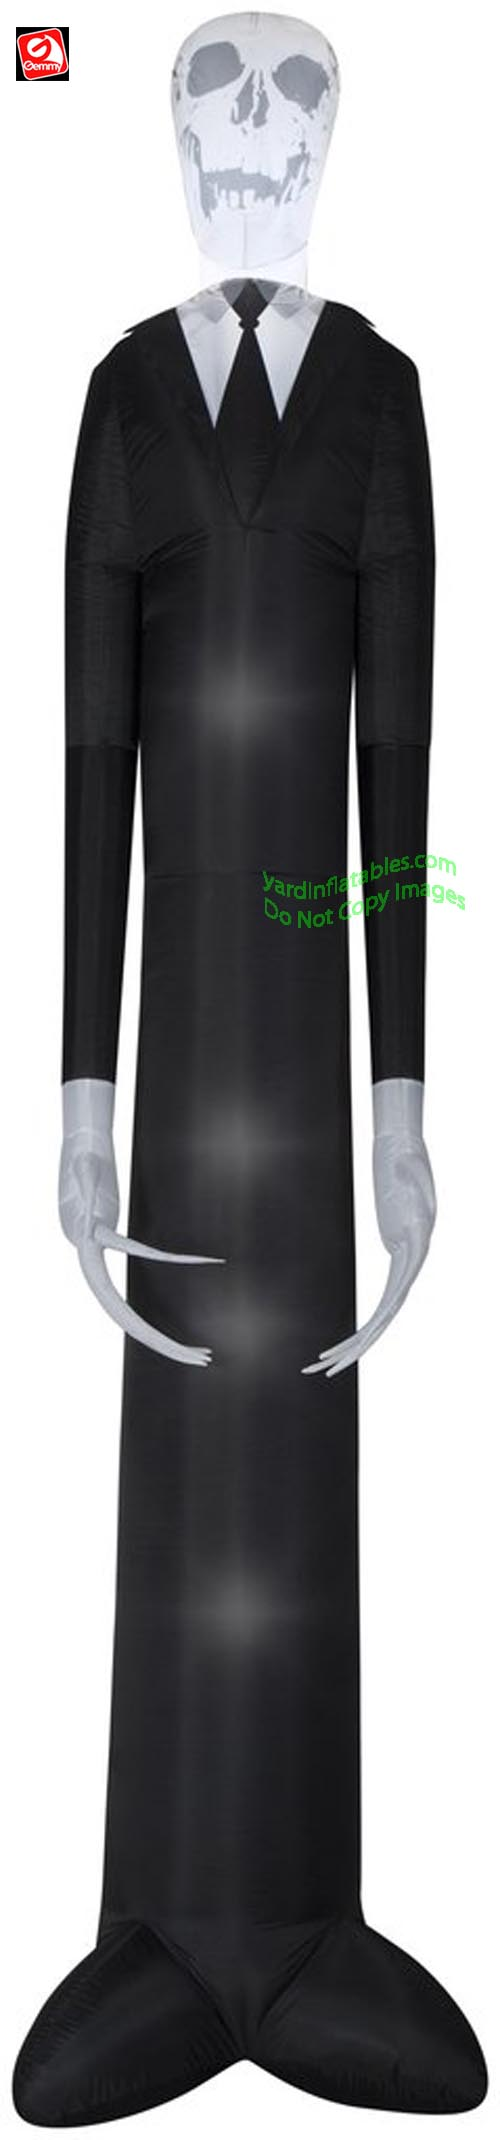 12' Gemmy Airblown Inflatable Short Circuit Giant Slender Slim Man